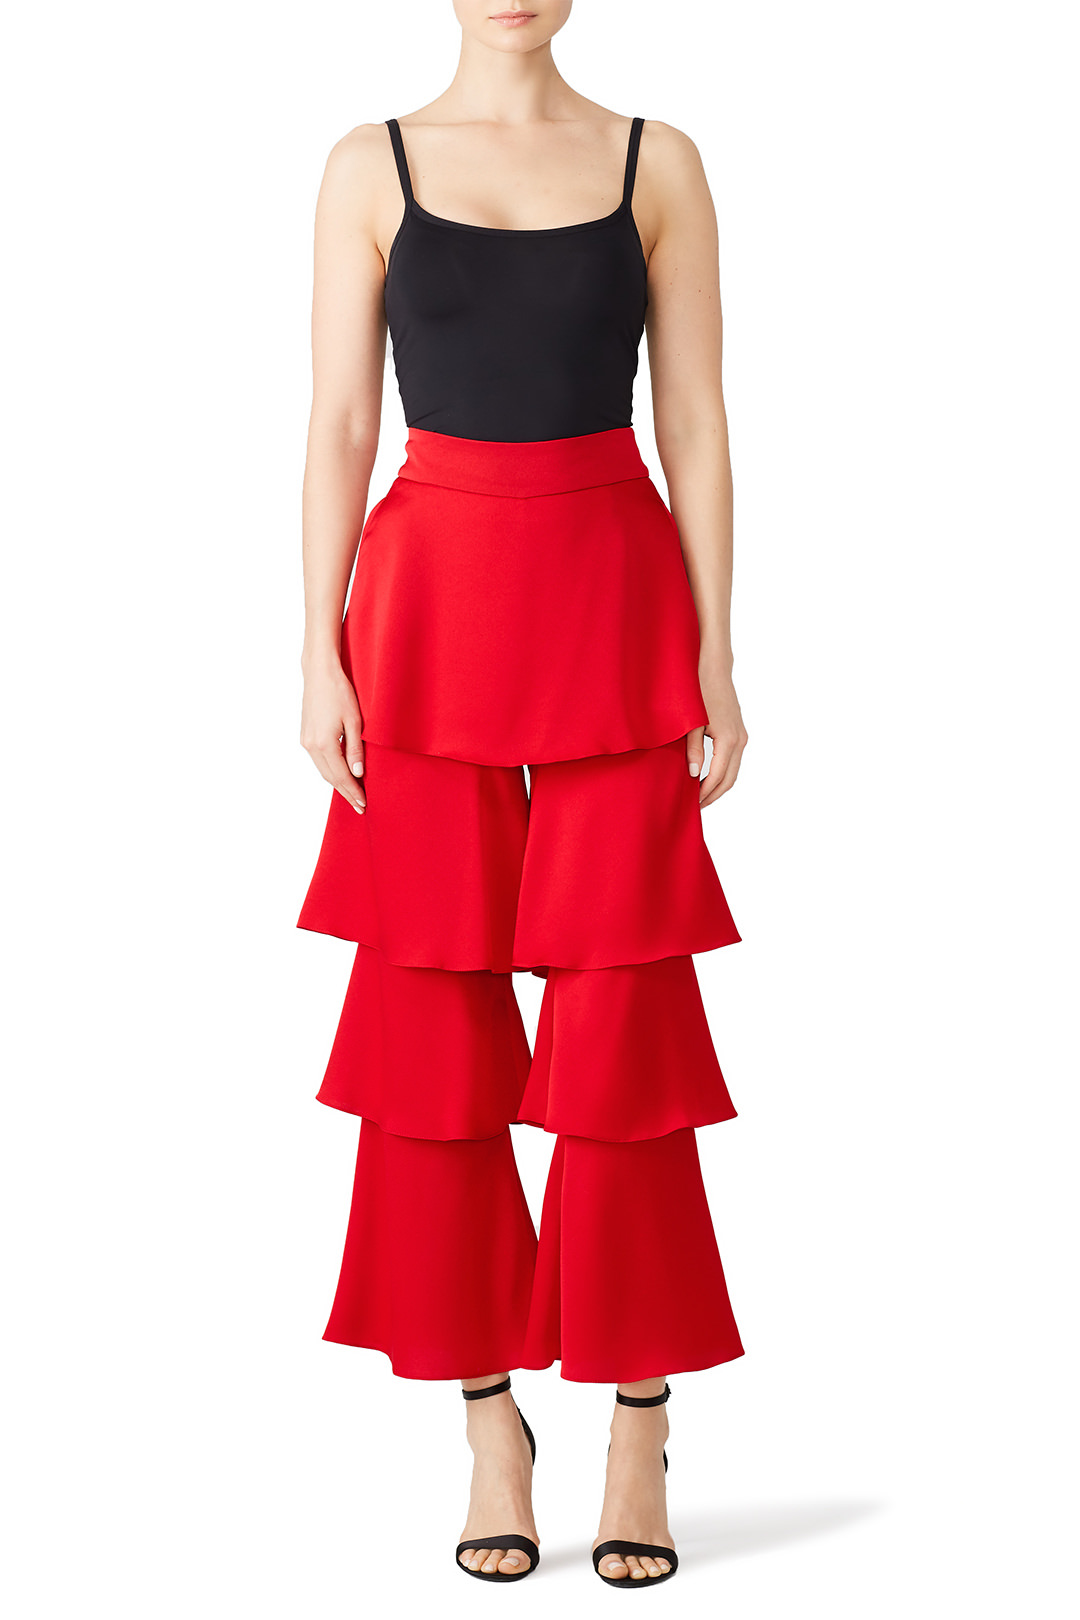 Osman Red Felix Ruffle Trousers - I just rented these for an Ugly Christmas sweater party. I figured I'd really take the outfit over the top…